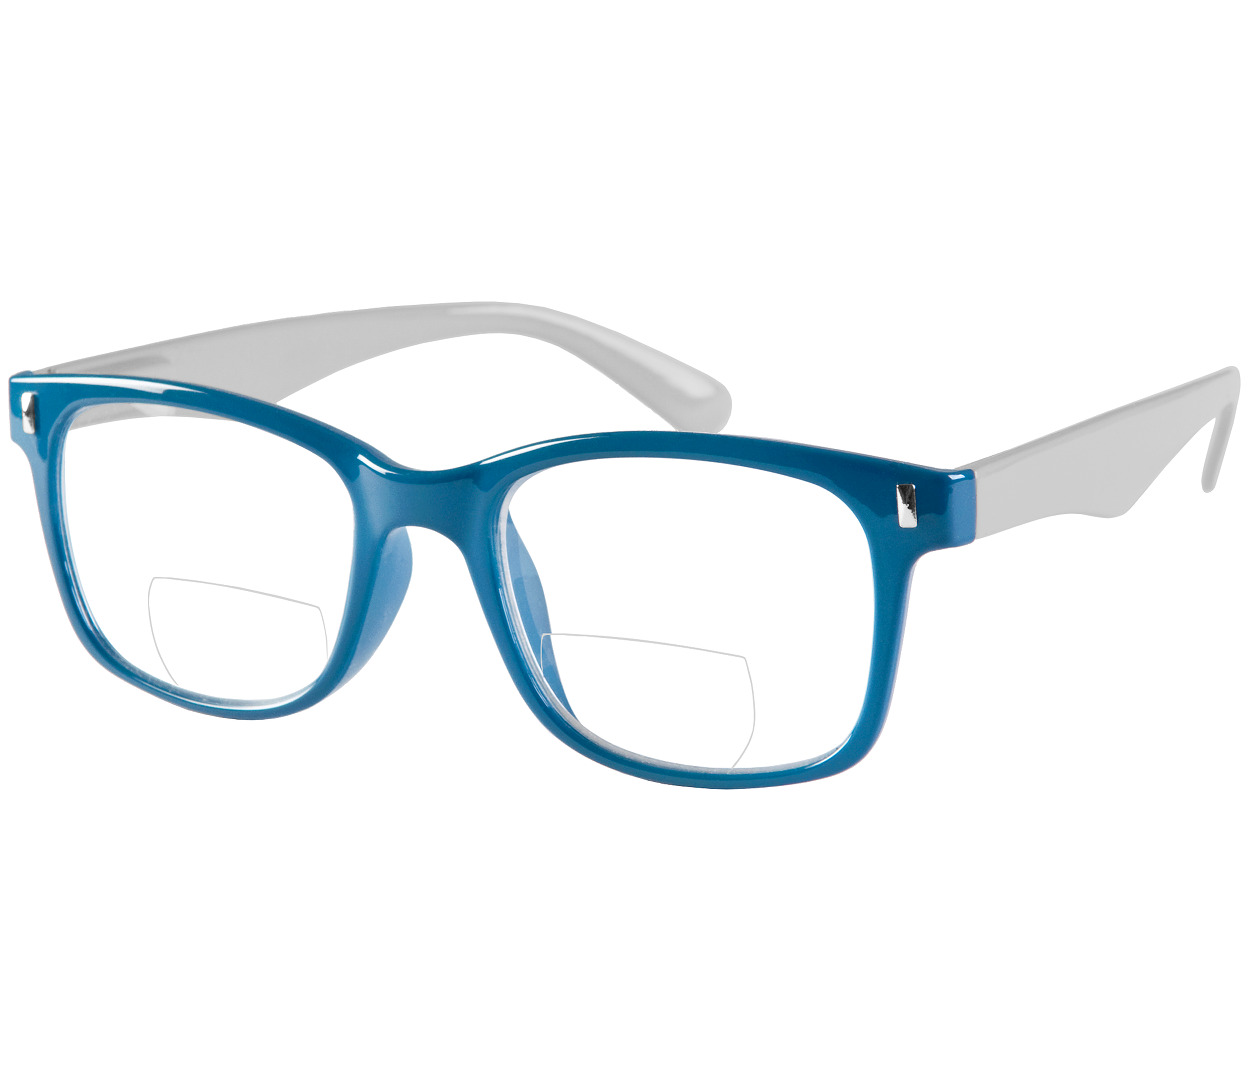 Main Image (Angle) - Otter (Blue) Bifocal Reading Glasses